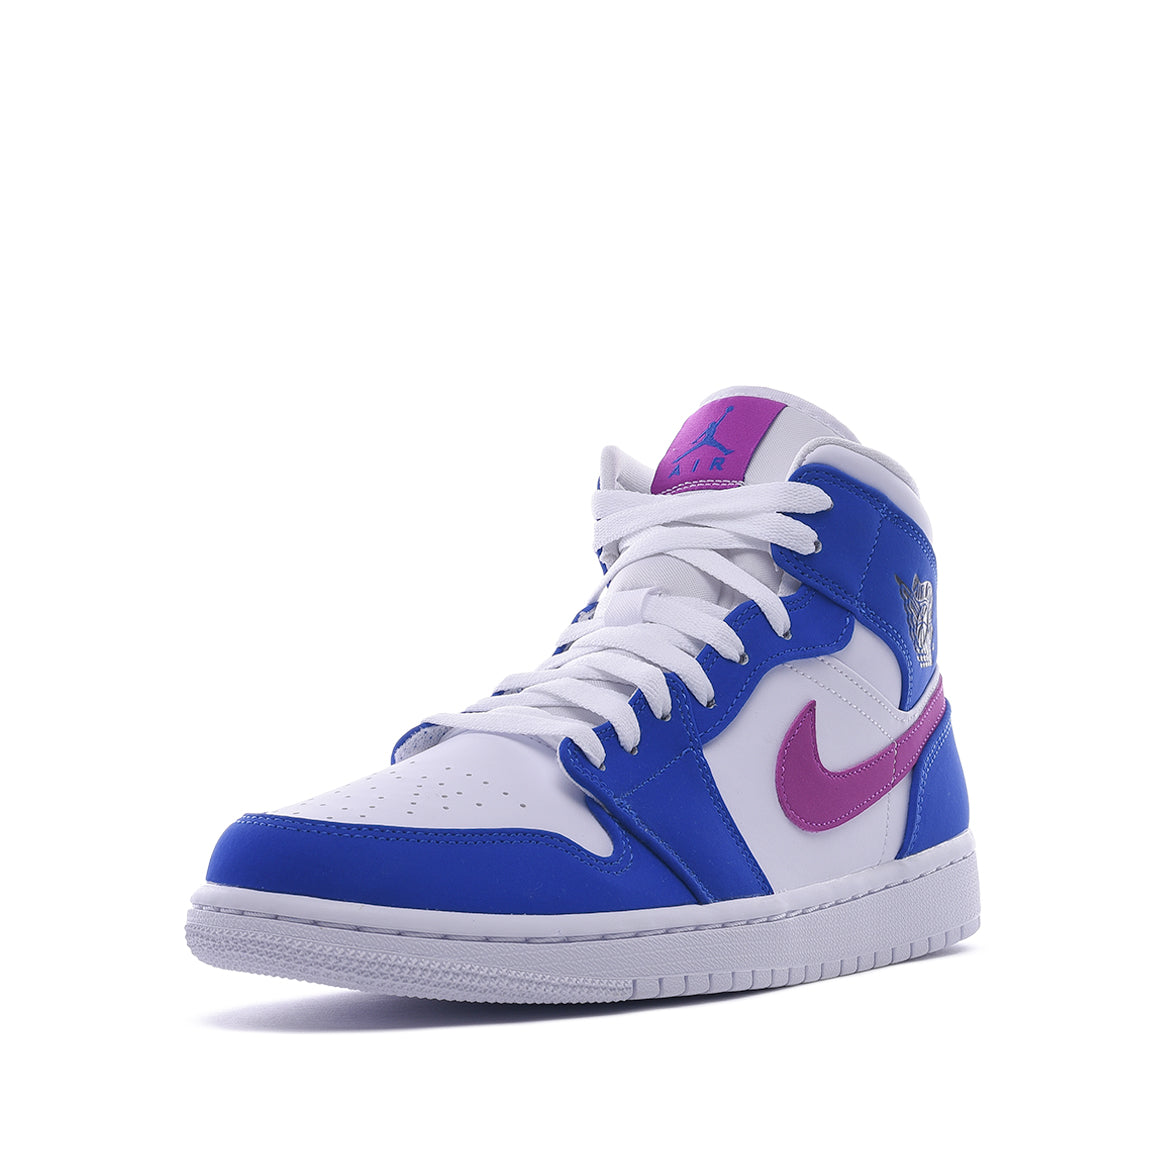 AIR JORDAN 1 MID - HYPER ROYAL / HYPER VIOLET